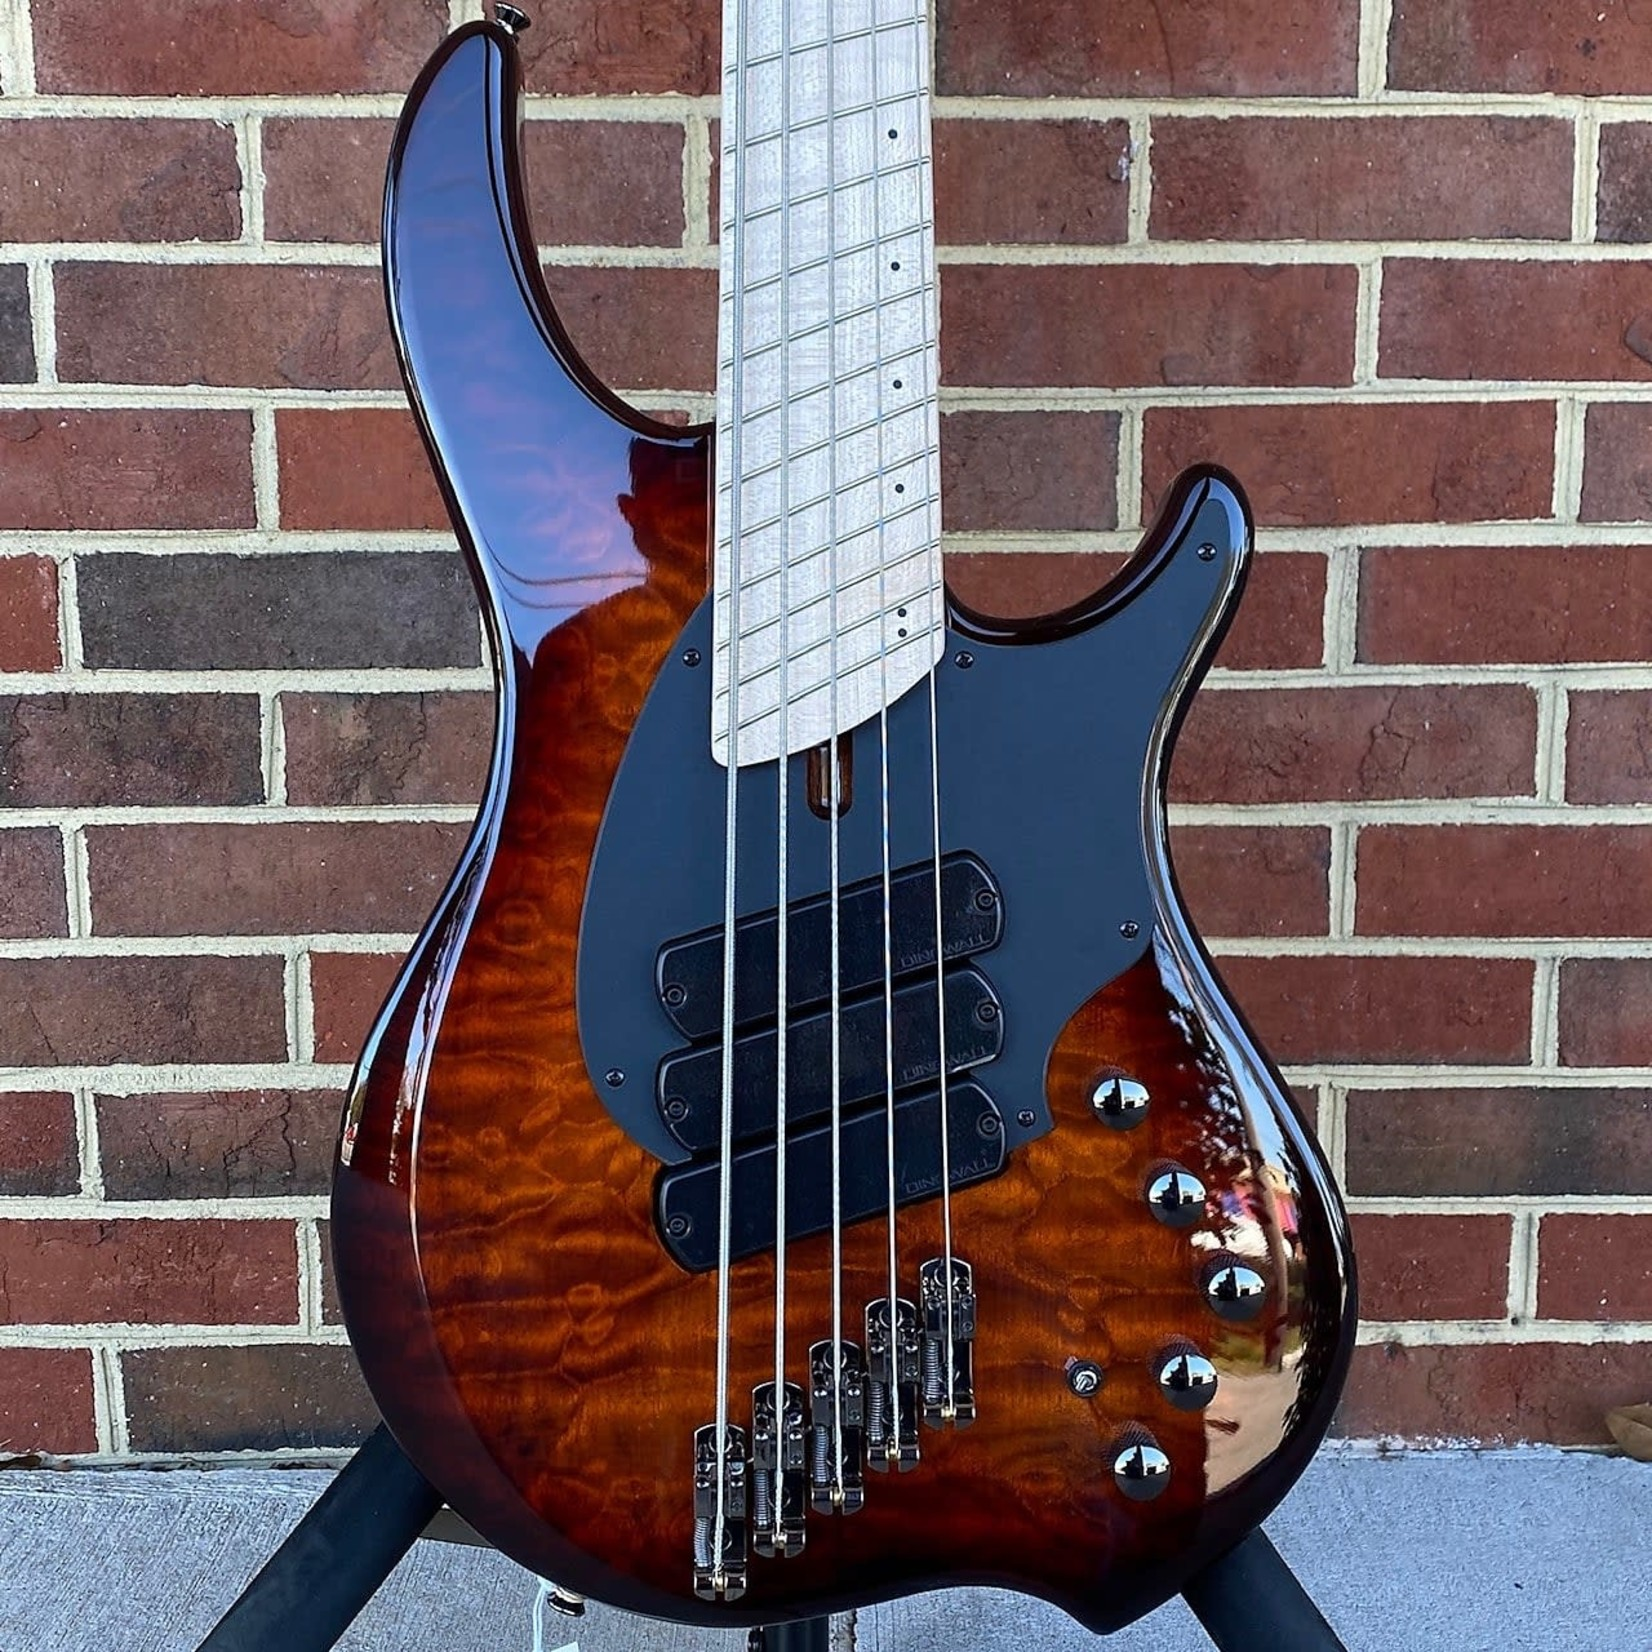 Dingwall Dingwall Combustion 5-String, 3x Pickups, Vintageburst, Quilted Maple Top, Swamp Ash Body, Maple Fretboard, Maple Neck, Dingwall Gig Bag